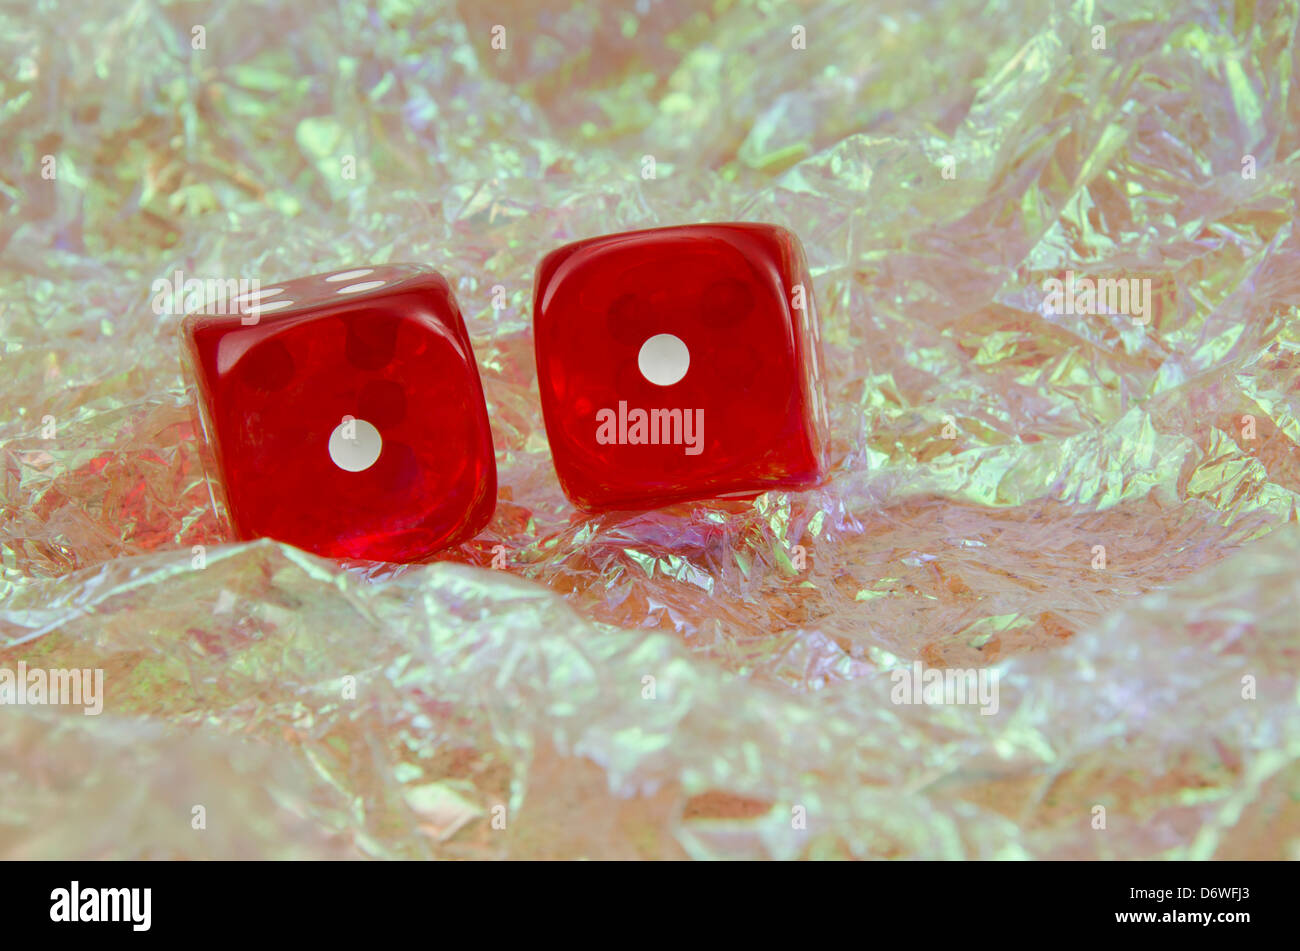 Pair of red dice over a bright, pearly bakground showing two ones, snake eyes - Stock Image